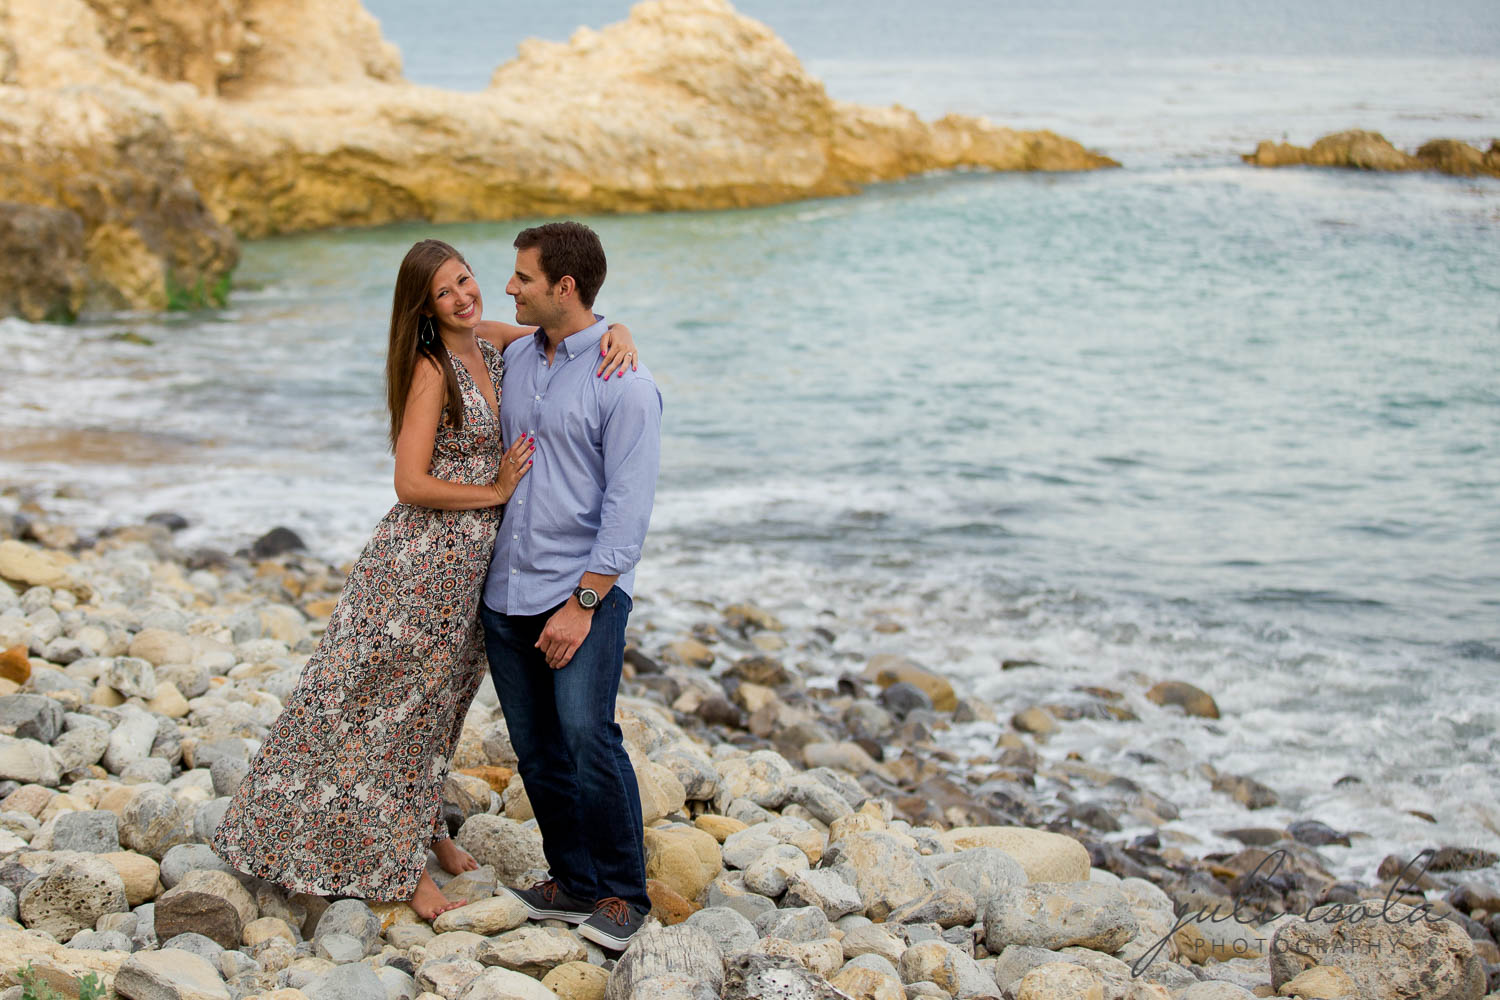 surprise_proposal_san_clemente_photographer (14 of 19).jpg